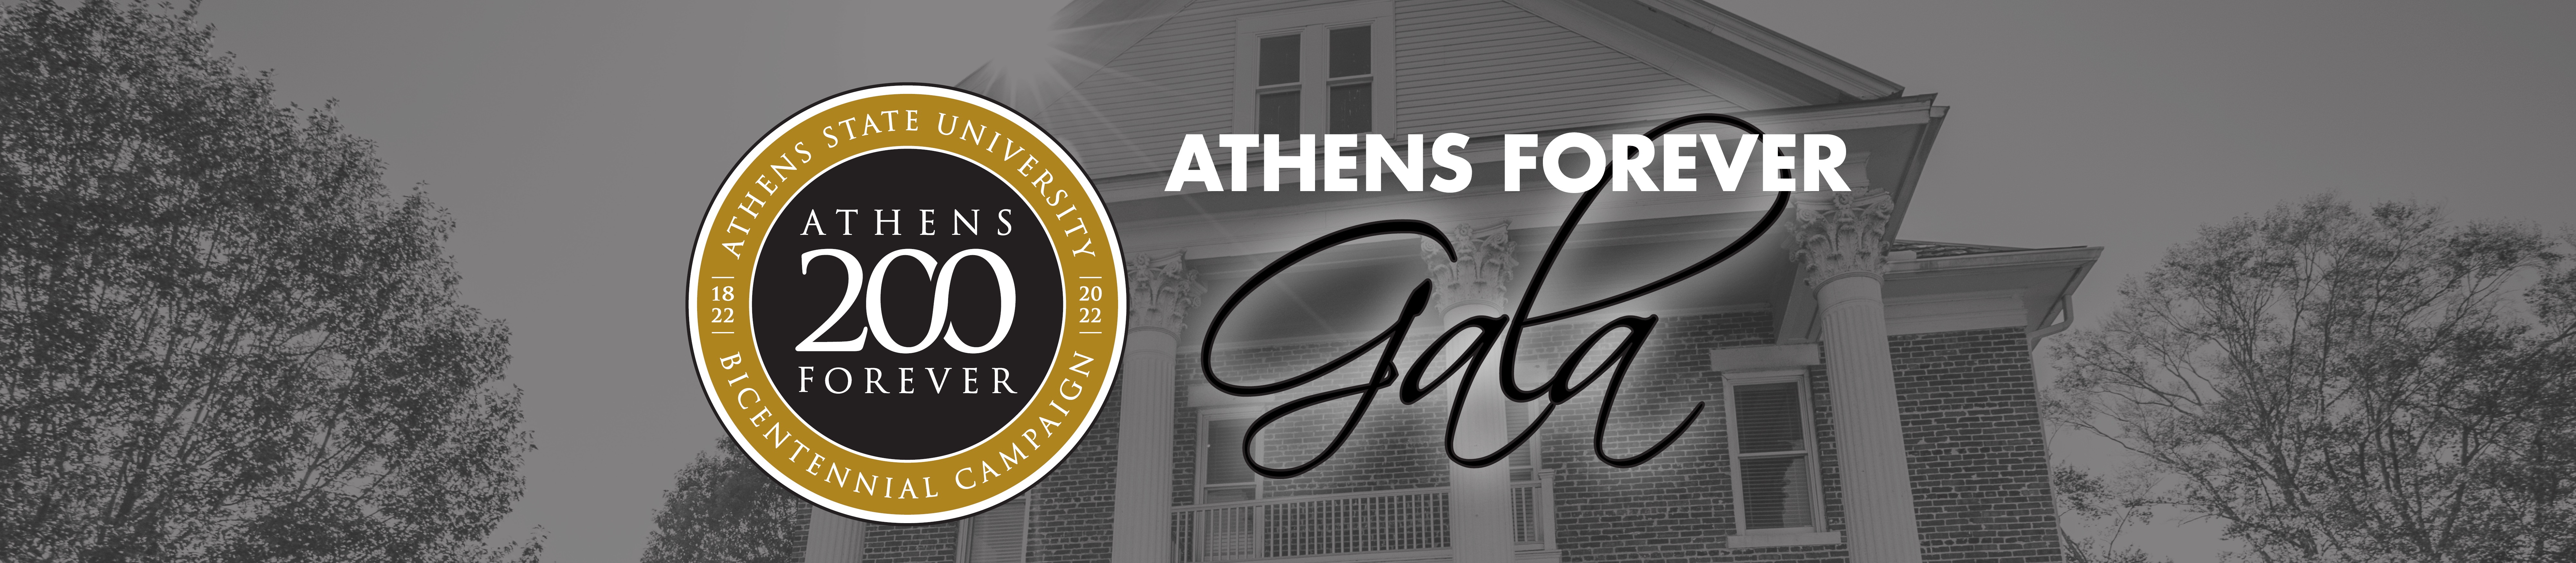 Athens Forever Gala Banner